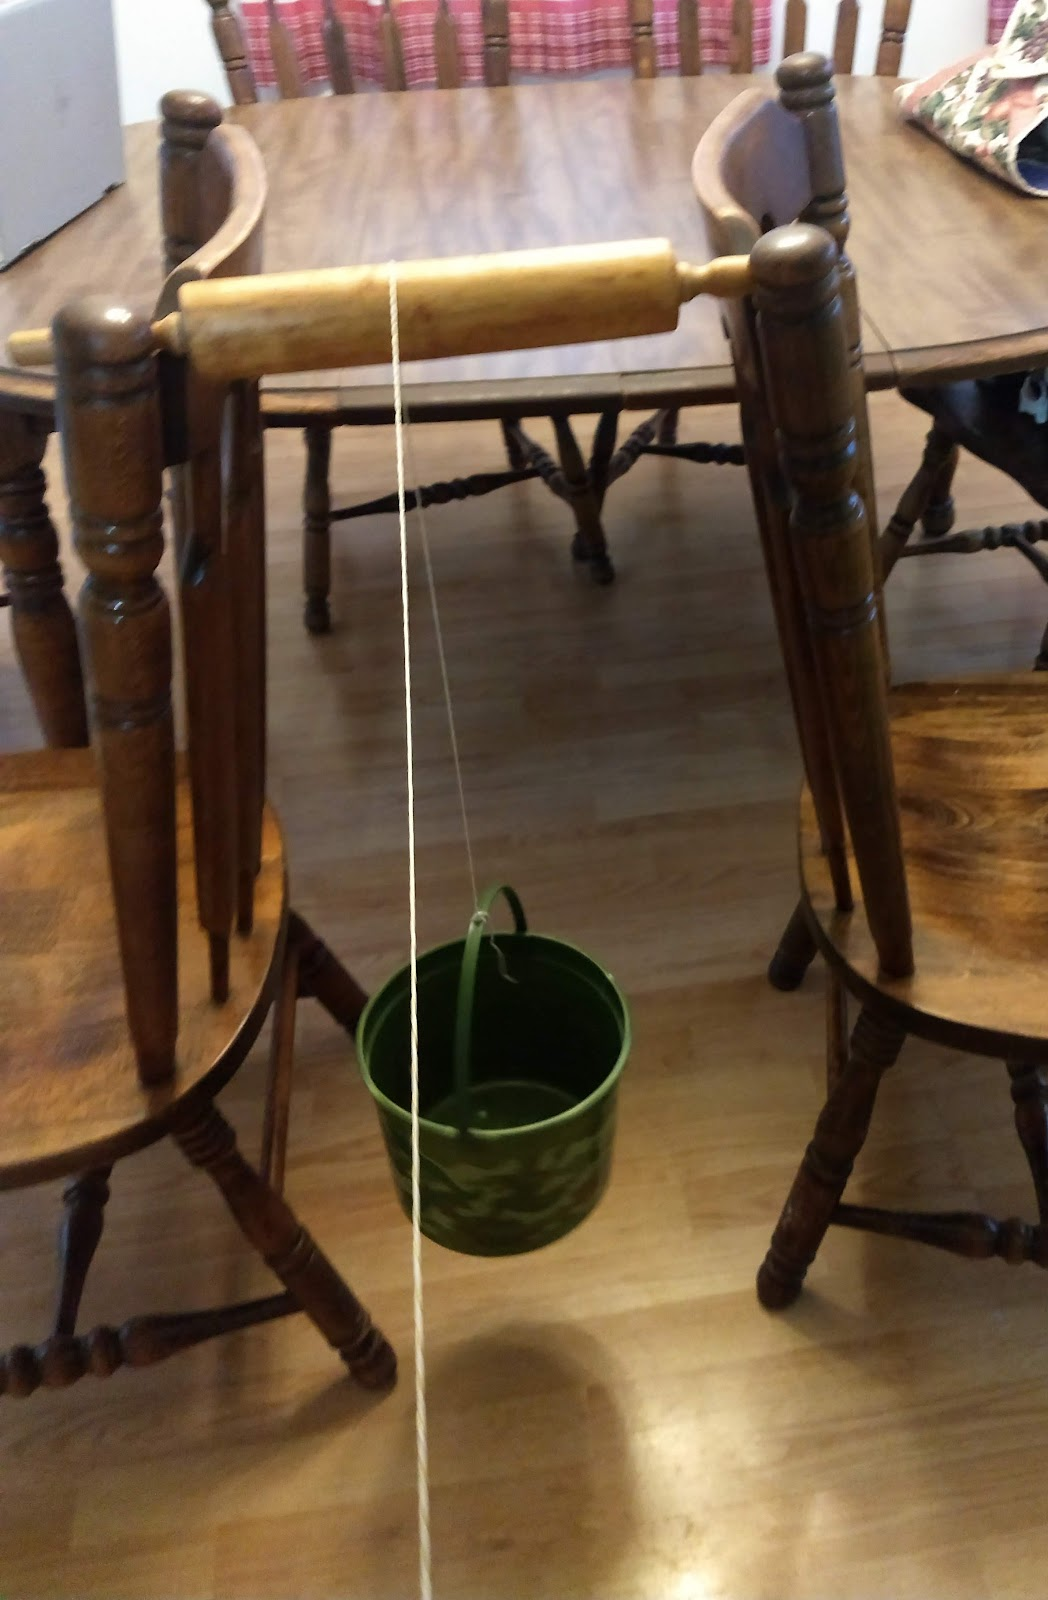 A rolling pin rests on the back of two kitchen chairs with a string draped over, tied to a bucket. The rolling pin is acting as a pulley.